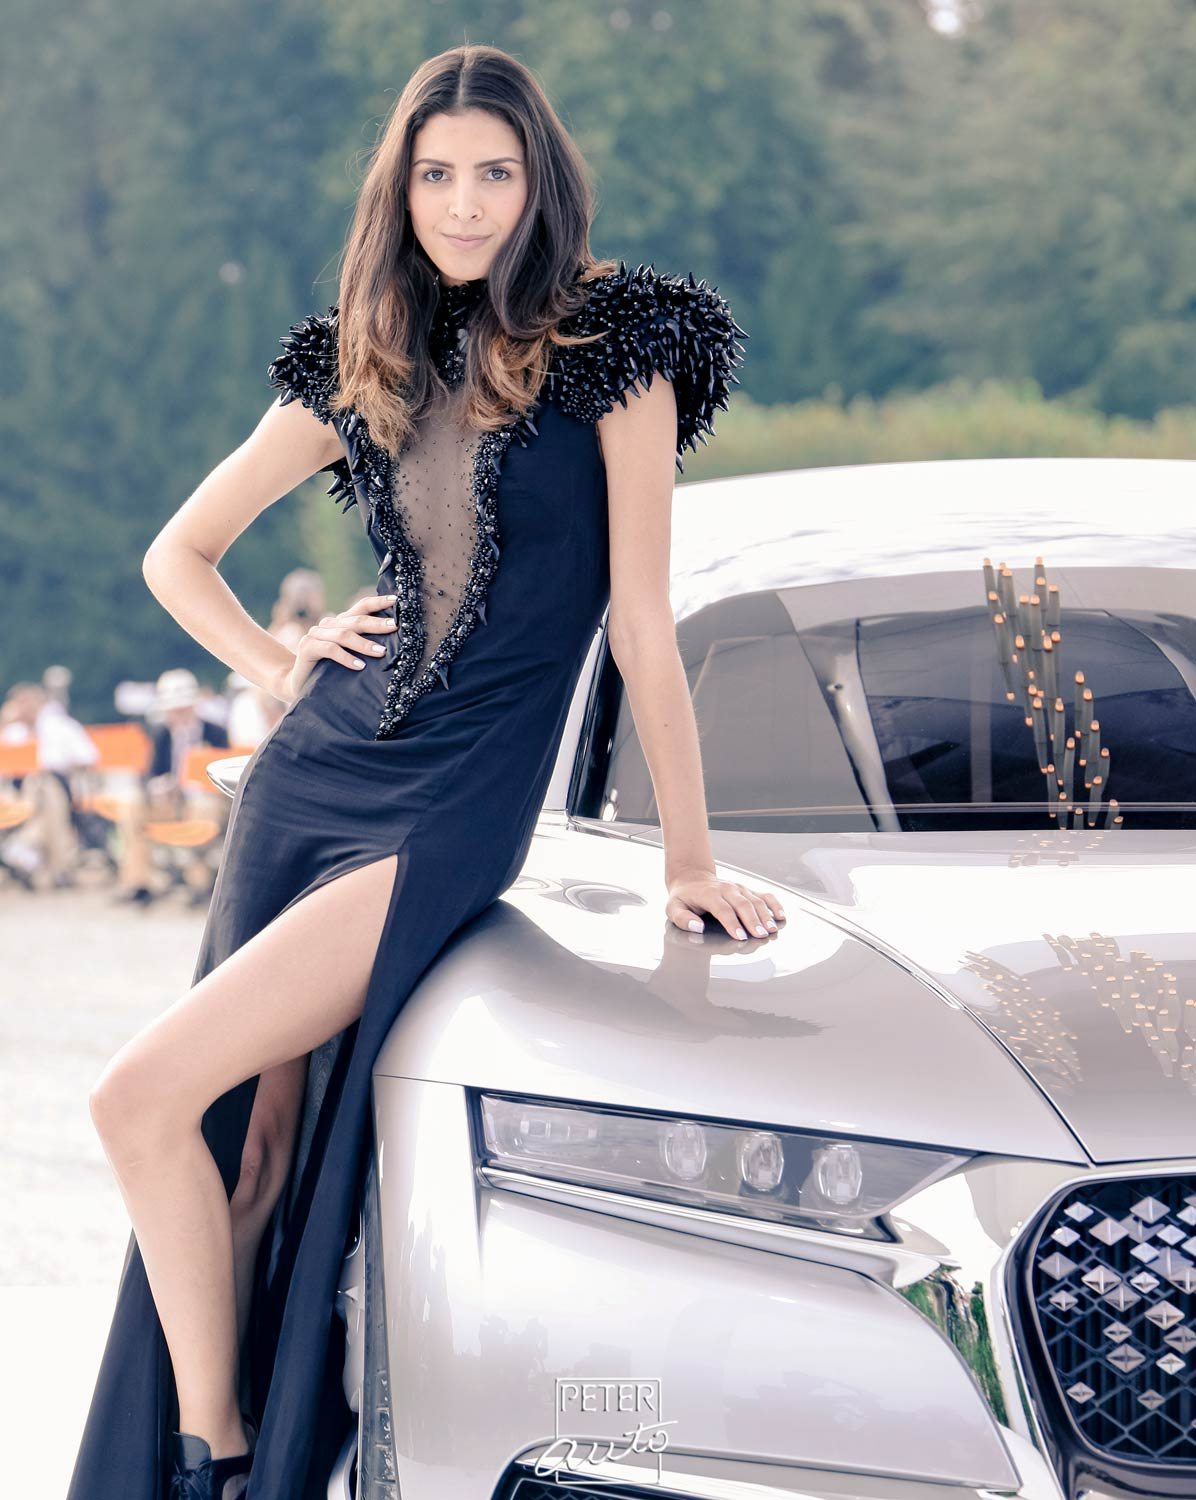 The Chantilly Arts & Elegance Richard Mille - Luxurious